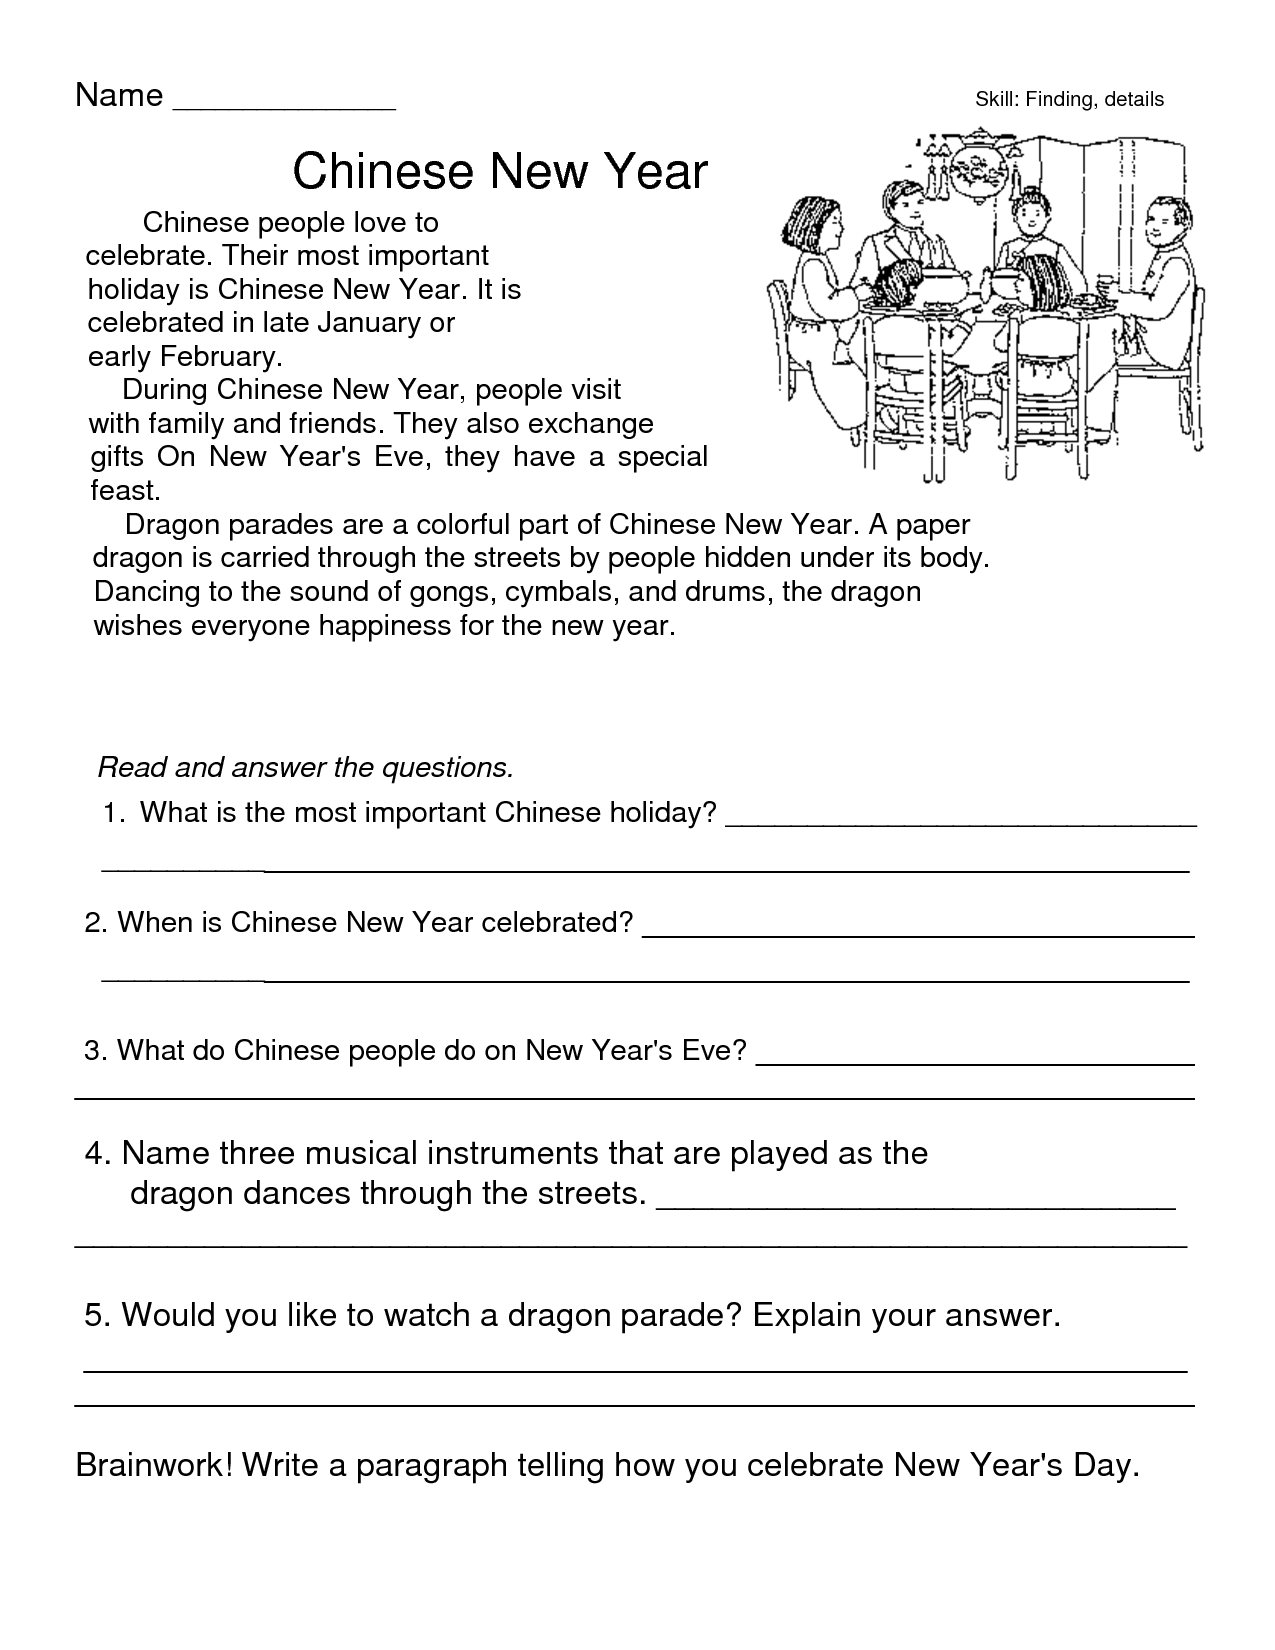 Do It Yourself Divorce Worksheet